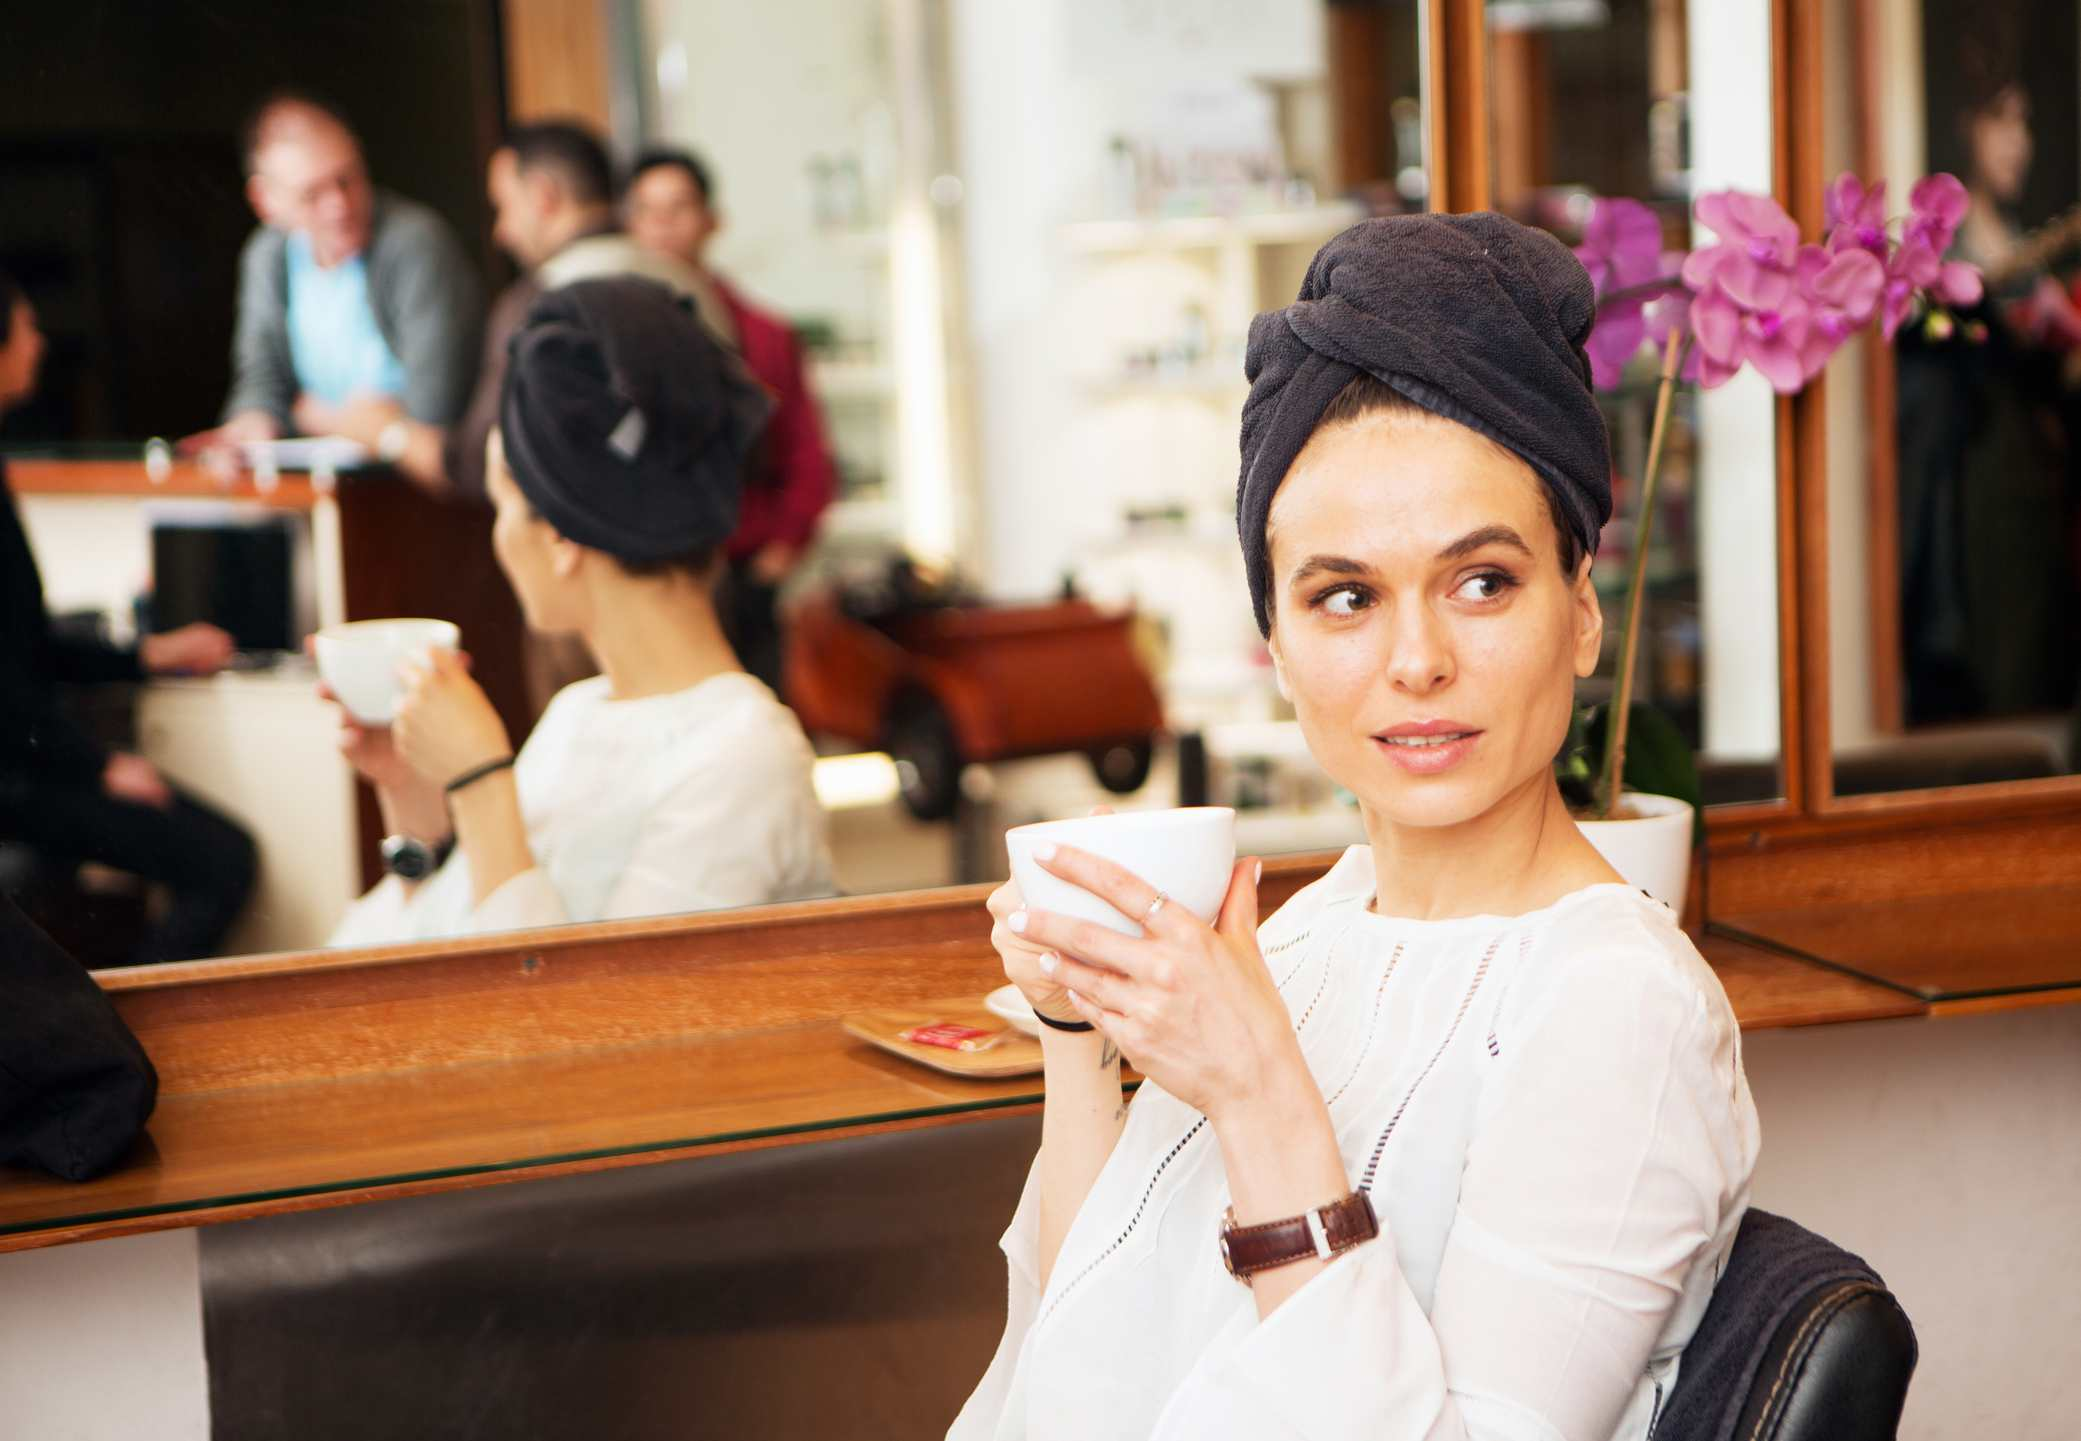 Female salon customer with a coffee cup